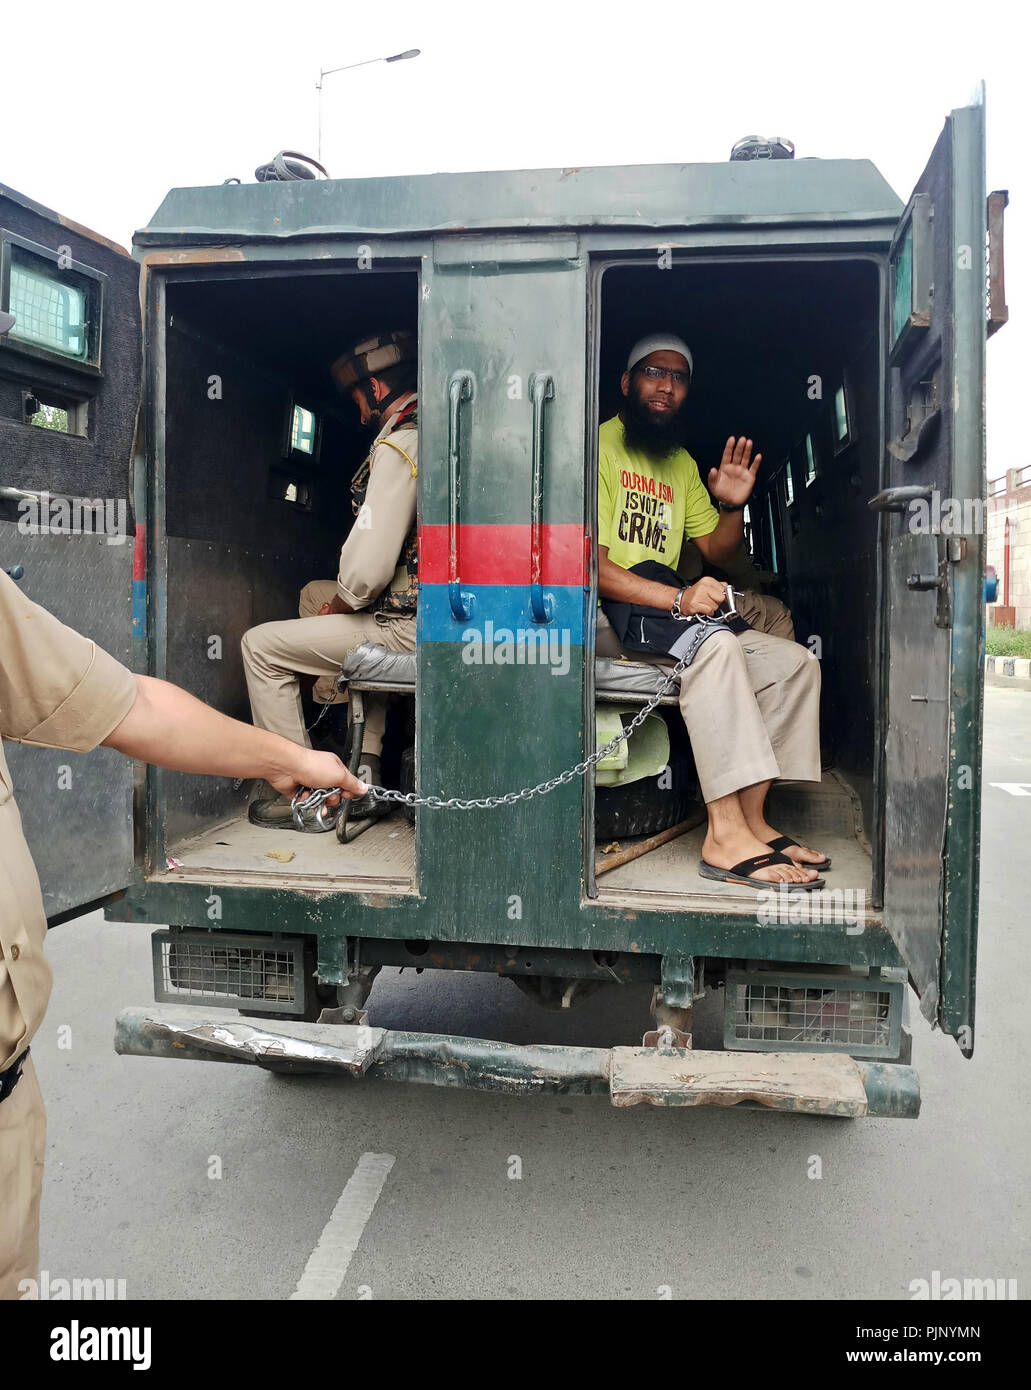 Srinagar, J&K, India. 8th Sept, 2018. - Aasif Sultan seen waving to his relatives from the police vehicle outside the court.Aasif Sultan, a local journalist and Assistant Editor of Kashmir Narrator magazine was arrested by the government forces and now being sent to Central Jail in judicial custody until Sept 22. He was arrested after a six-day detention at a police station in Batmaloo area of Srinagar.Several journalists' bodies including Reporters without Borders and International Federation of Journalists have called for his immediate release. (Credit Image: © Saqib Majeed/SOPA Image - Stock Image